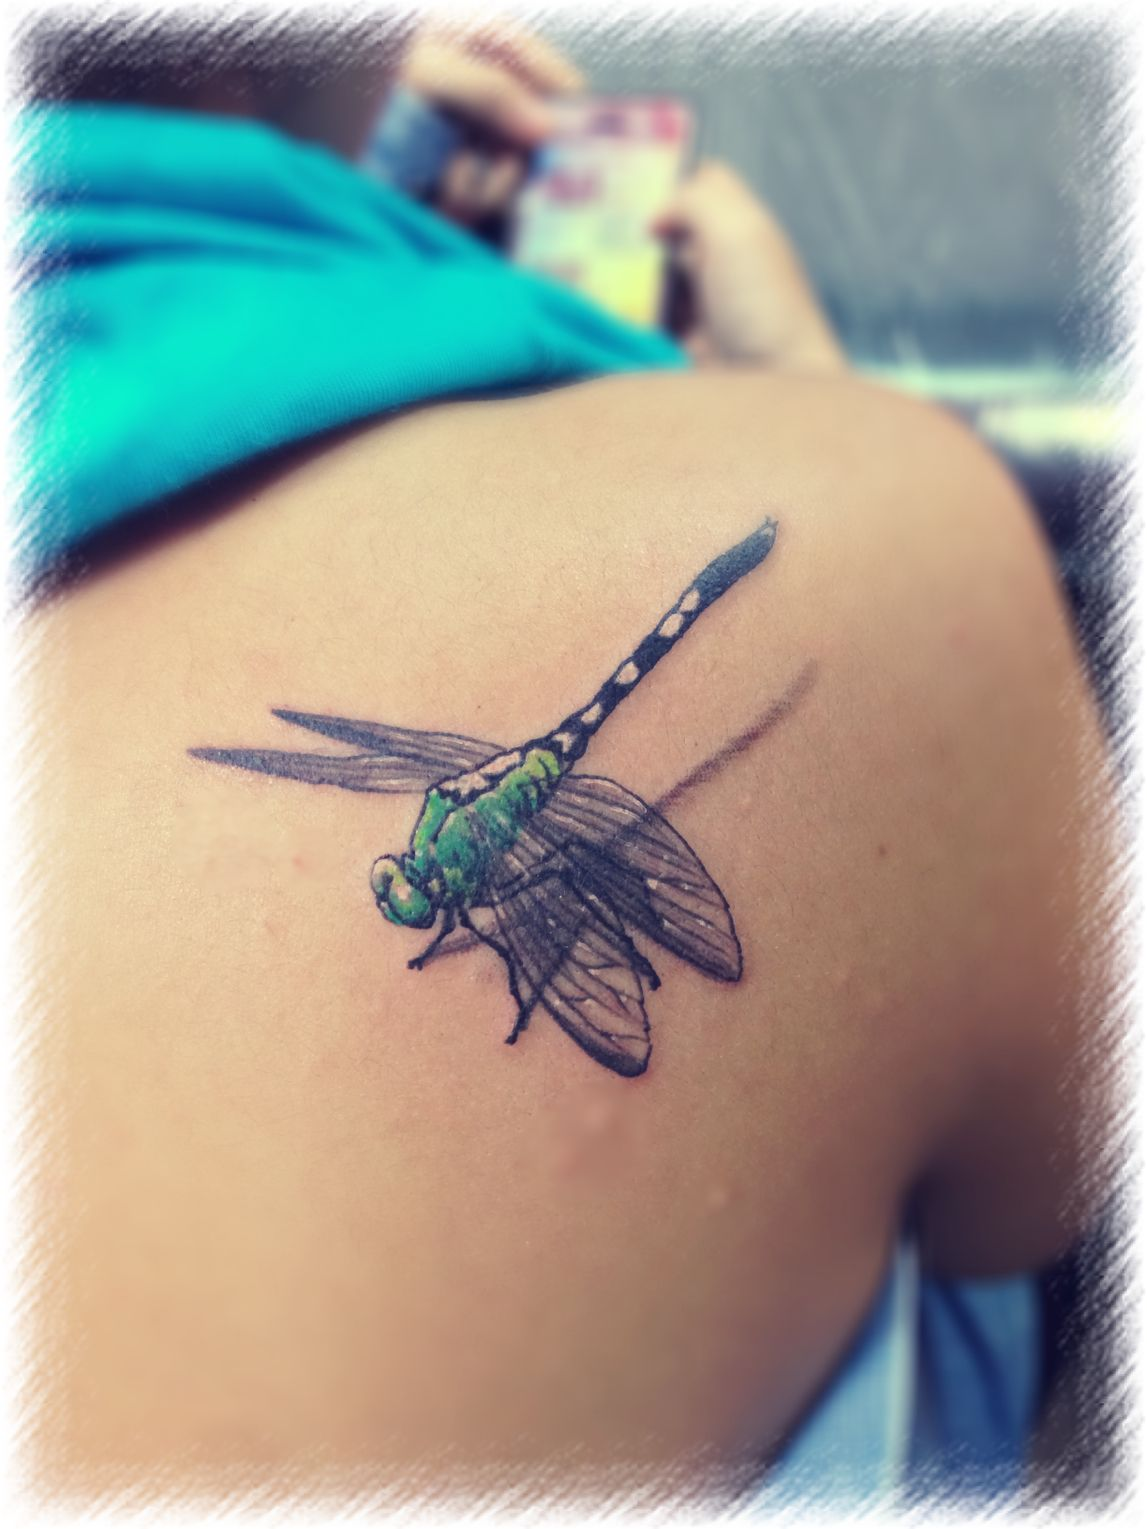 Amazing Dragonfly Tattoo Awesome B O D Y A R T Ideas And Designs